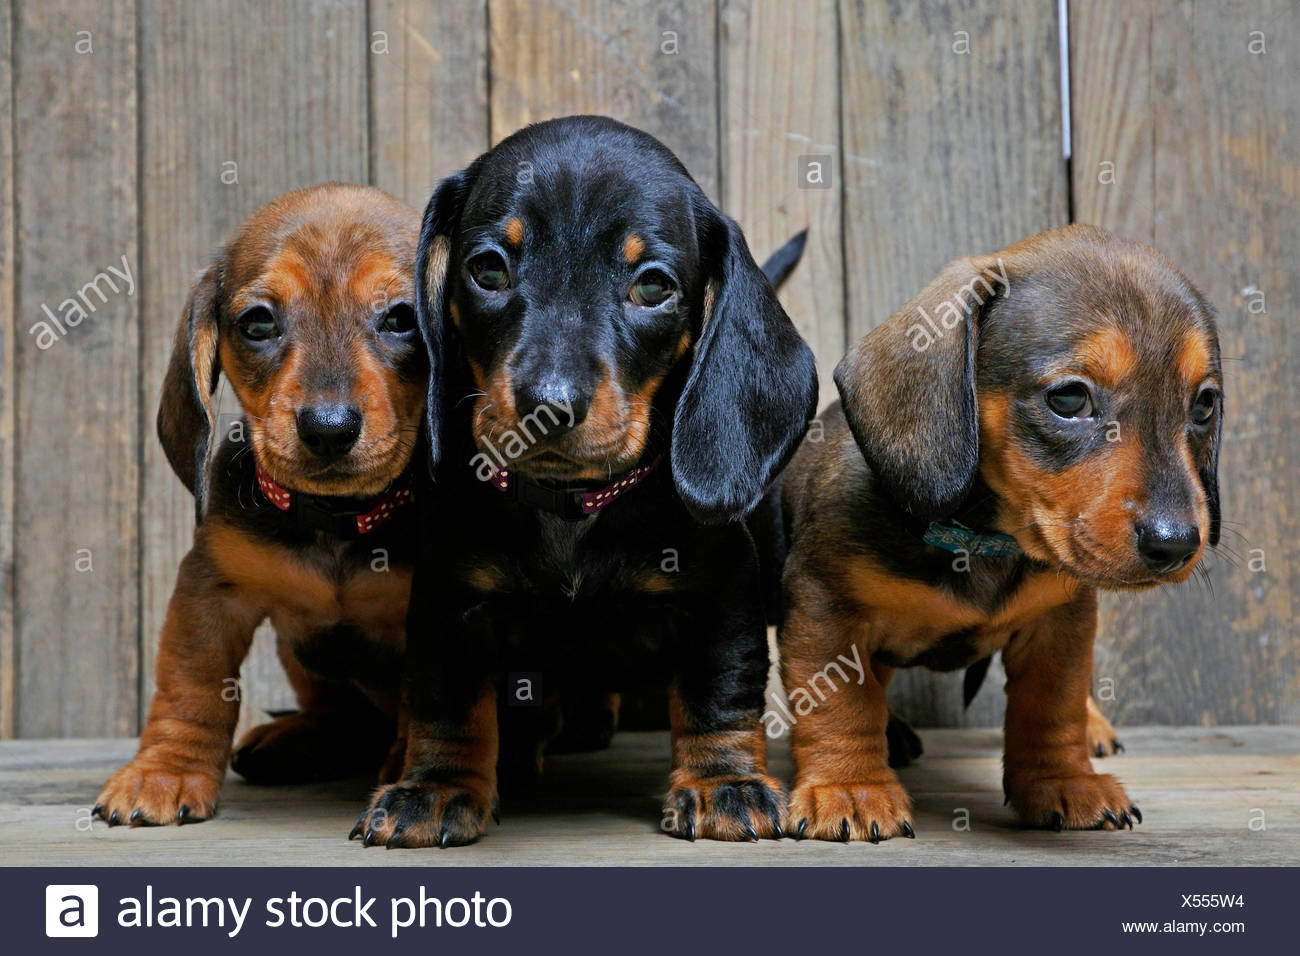 Short Haired Dachshund Short Haired Sausage Dog Domestic Dog Canis Lupus F Familiaris Three Cute Dachshund Puppies Standing And Sitting Side By Side On Wooden Boards Stock Photo Alamy